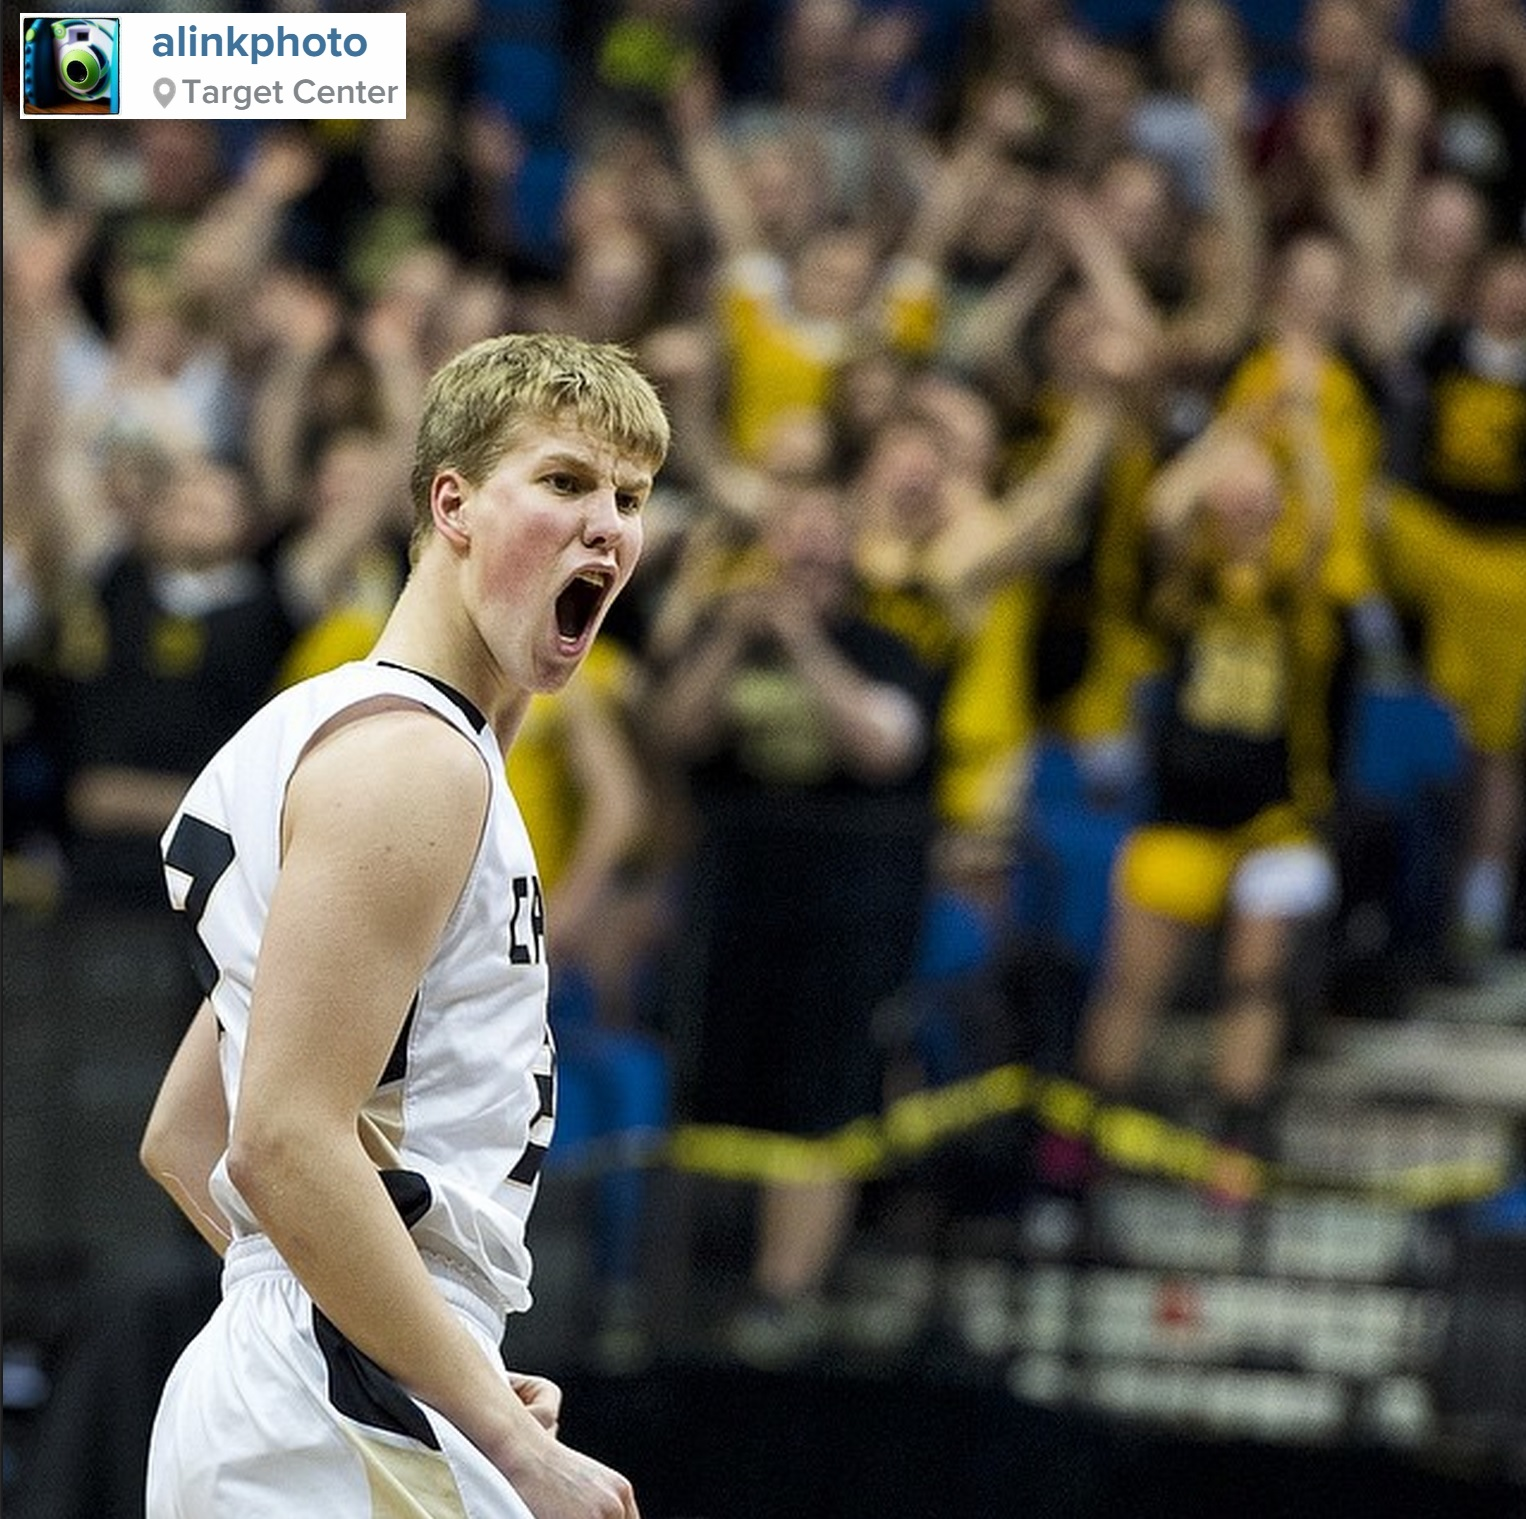 Caledonia's Kyle Sorenson reacts after hitting a 3-pointer in the first half of the state semifinal against Maple River on Friday, March 13, 2015, at the Target Center in Minneapolis. PHOTO: Andrew Link / @ALinkPhoto on Instagram